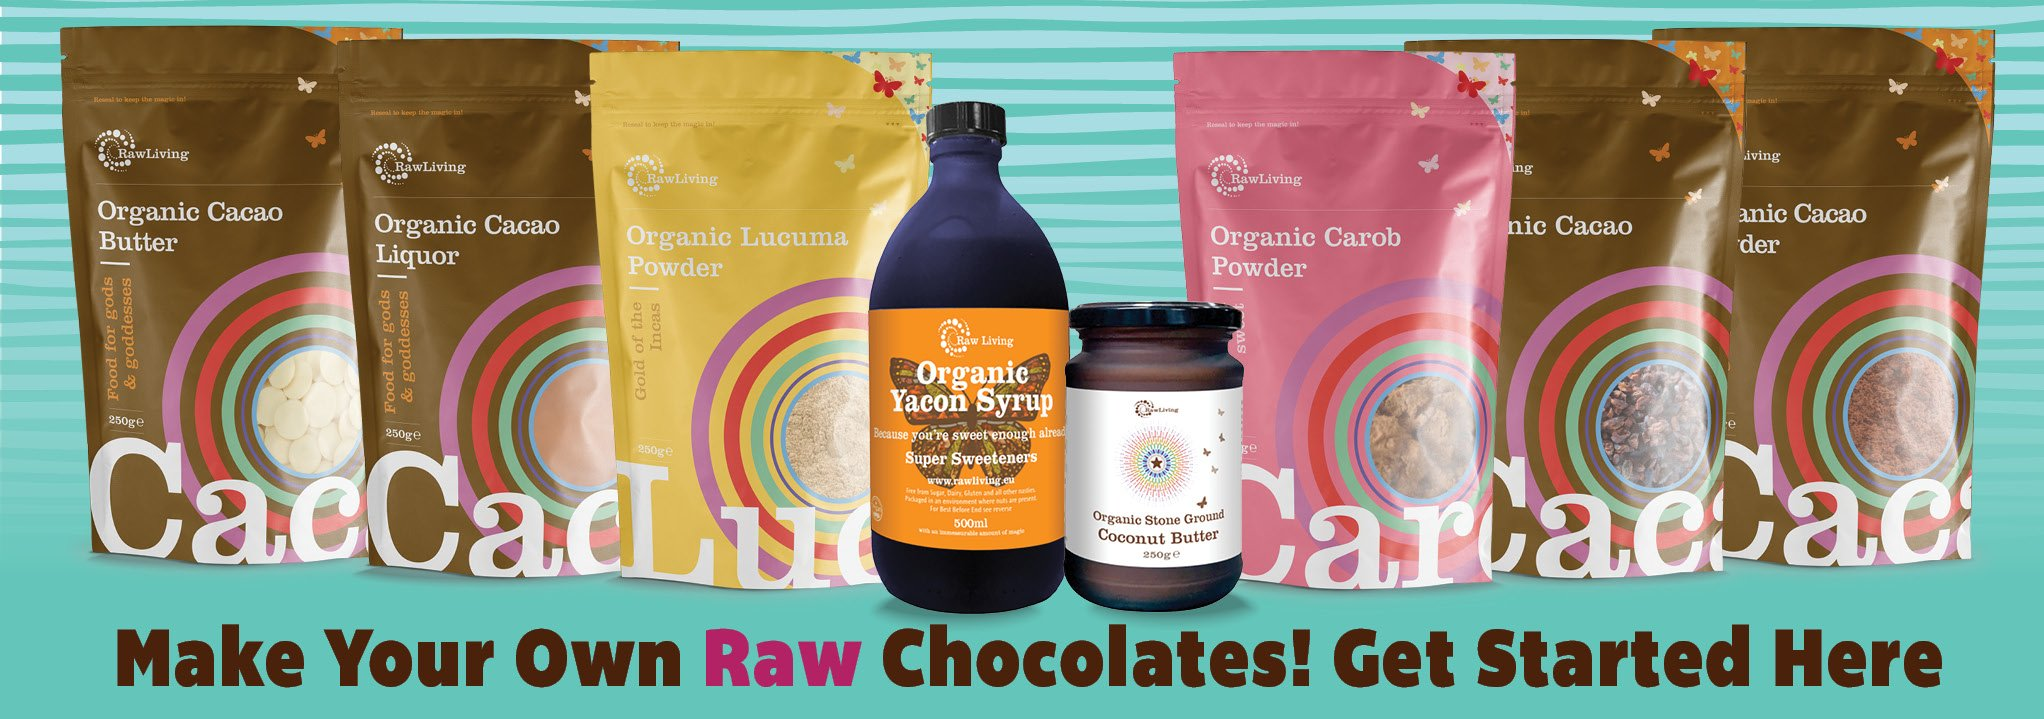 raw chocolate products